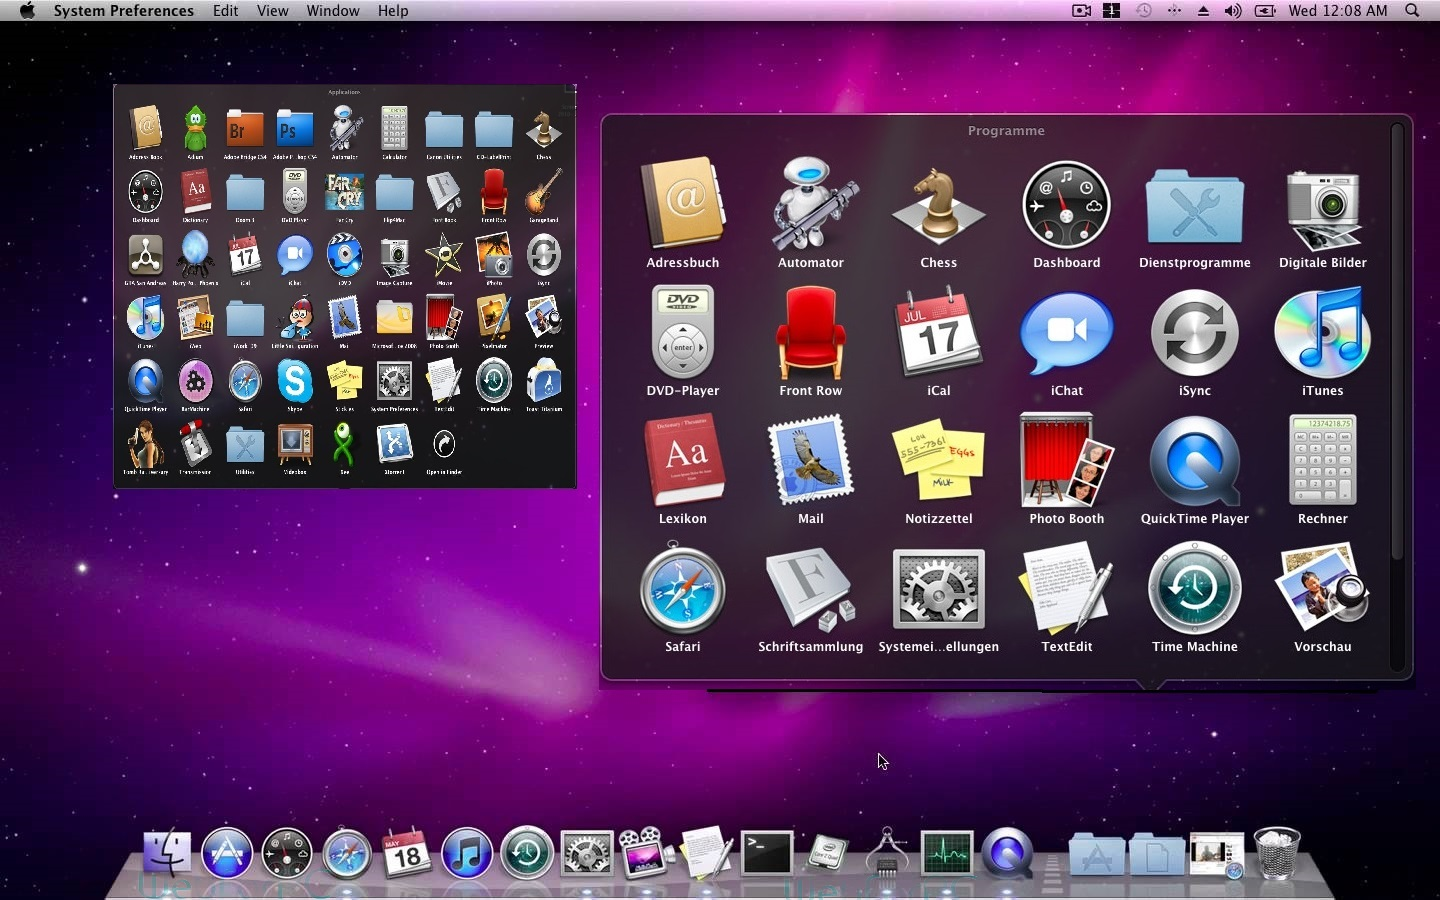 free download mac os x snow leopard iso file